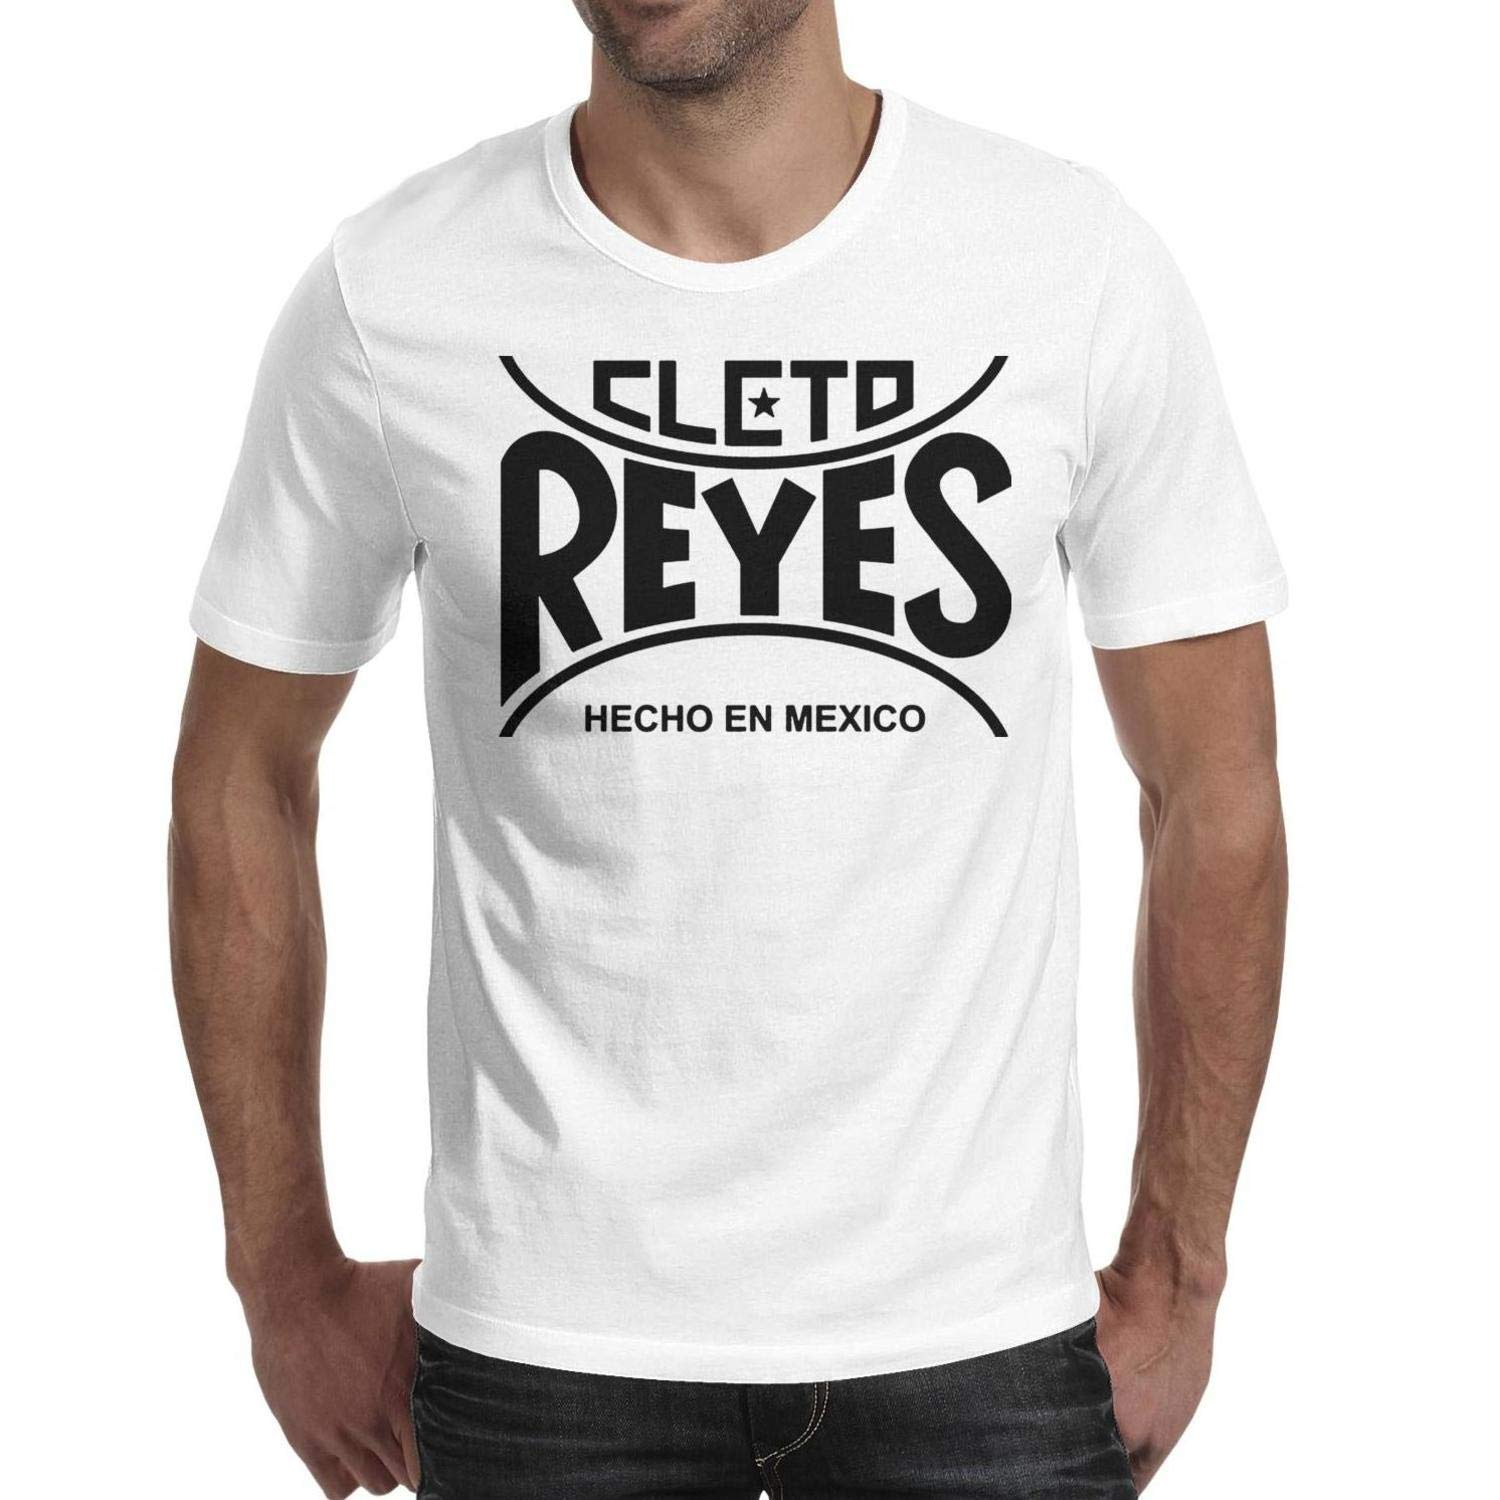 Yoles05 Gym Mens Cotton Tee-Cleto-Funny-Reyes-T Shirt Running Breathable